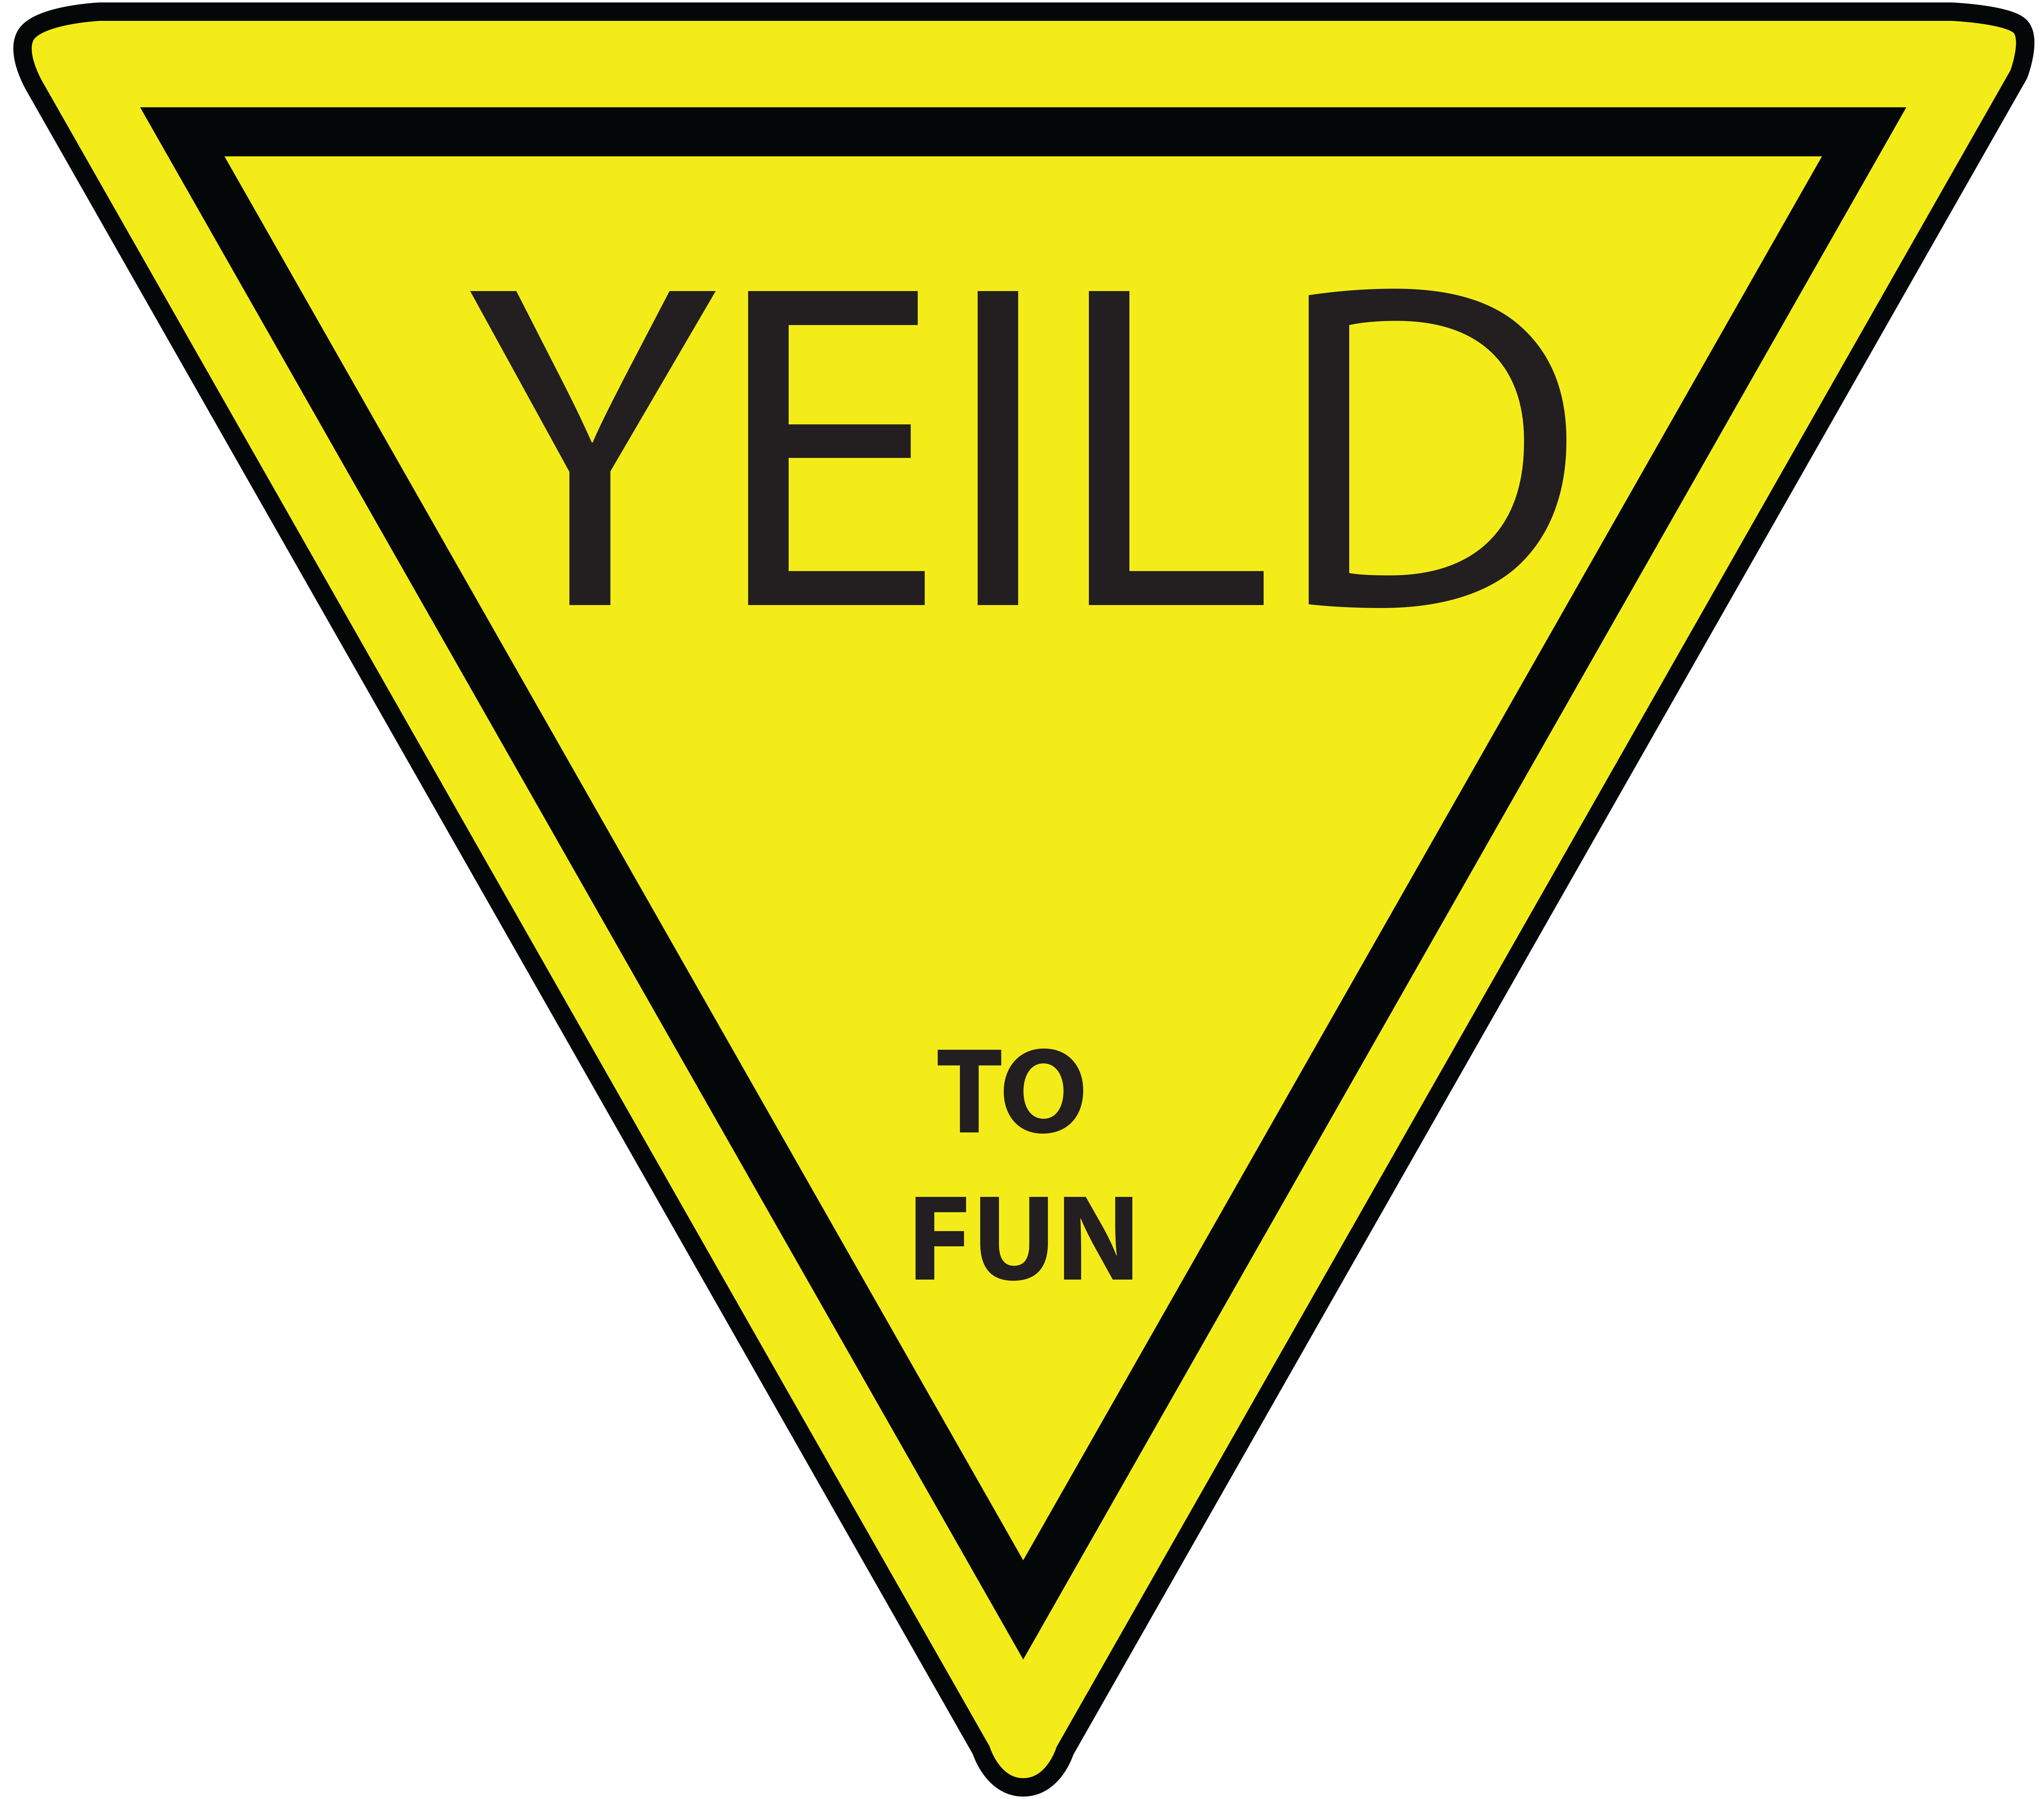 yield sign clipart-yield sign clipart-7